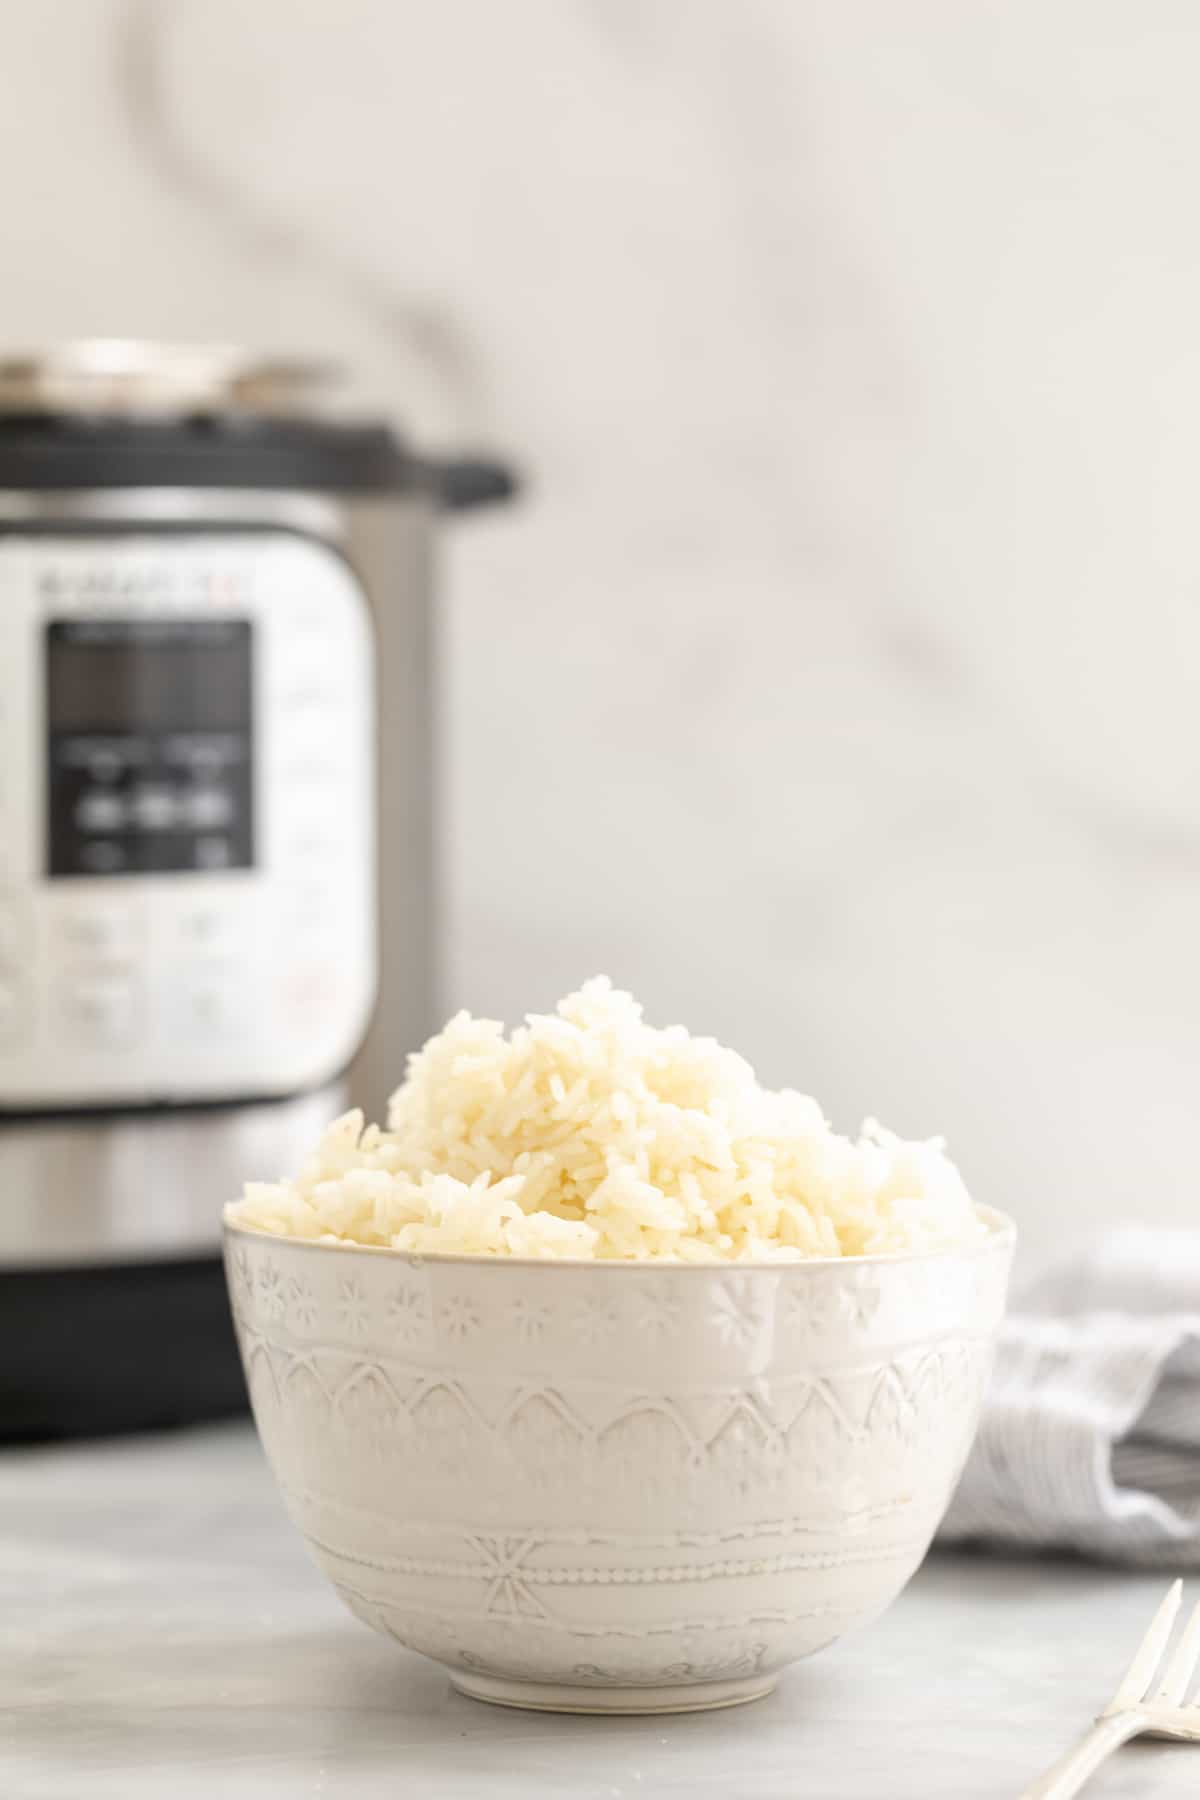 Bowl filled with white jasmine rice with the instant pot in the background.